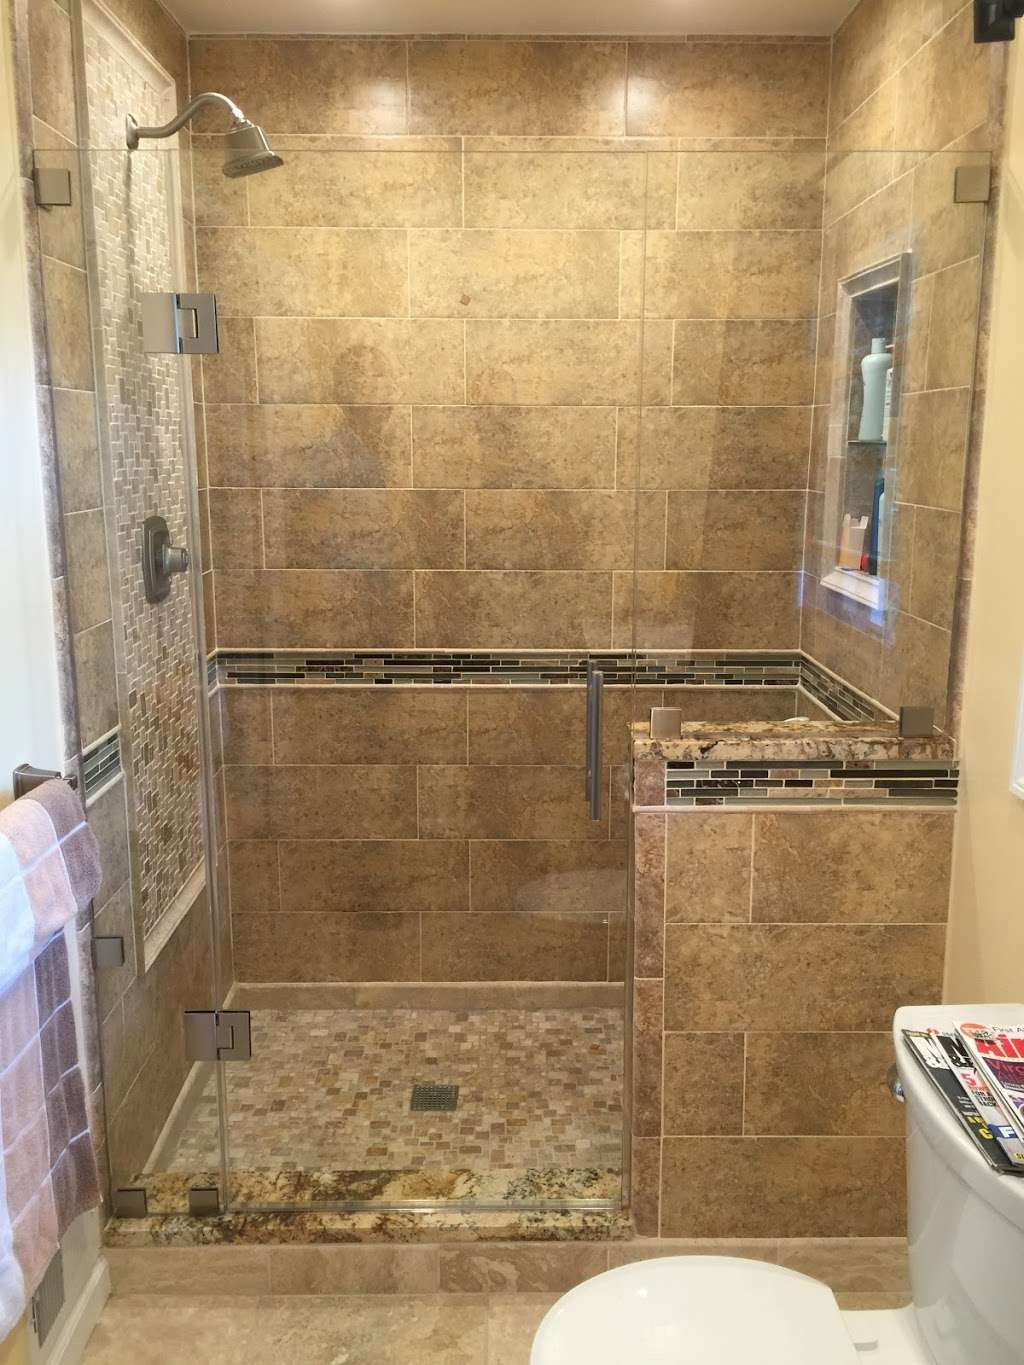 Custom shower door&mirrors - store  | Photo 2 of 10 | Address: 522 Columbia Ave #3, Fort Lee, NJ 07024, USA | Phone: (929) 204-2845